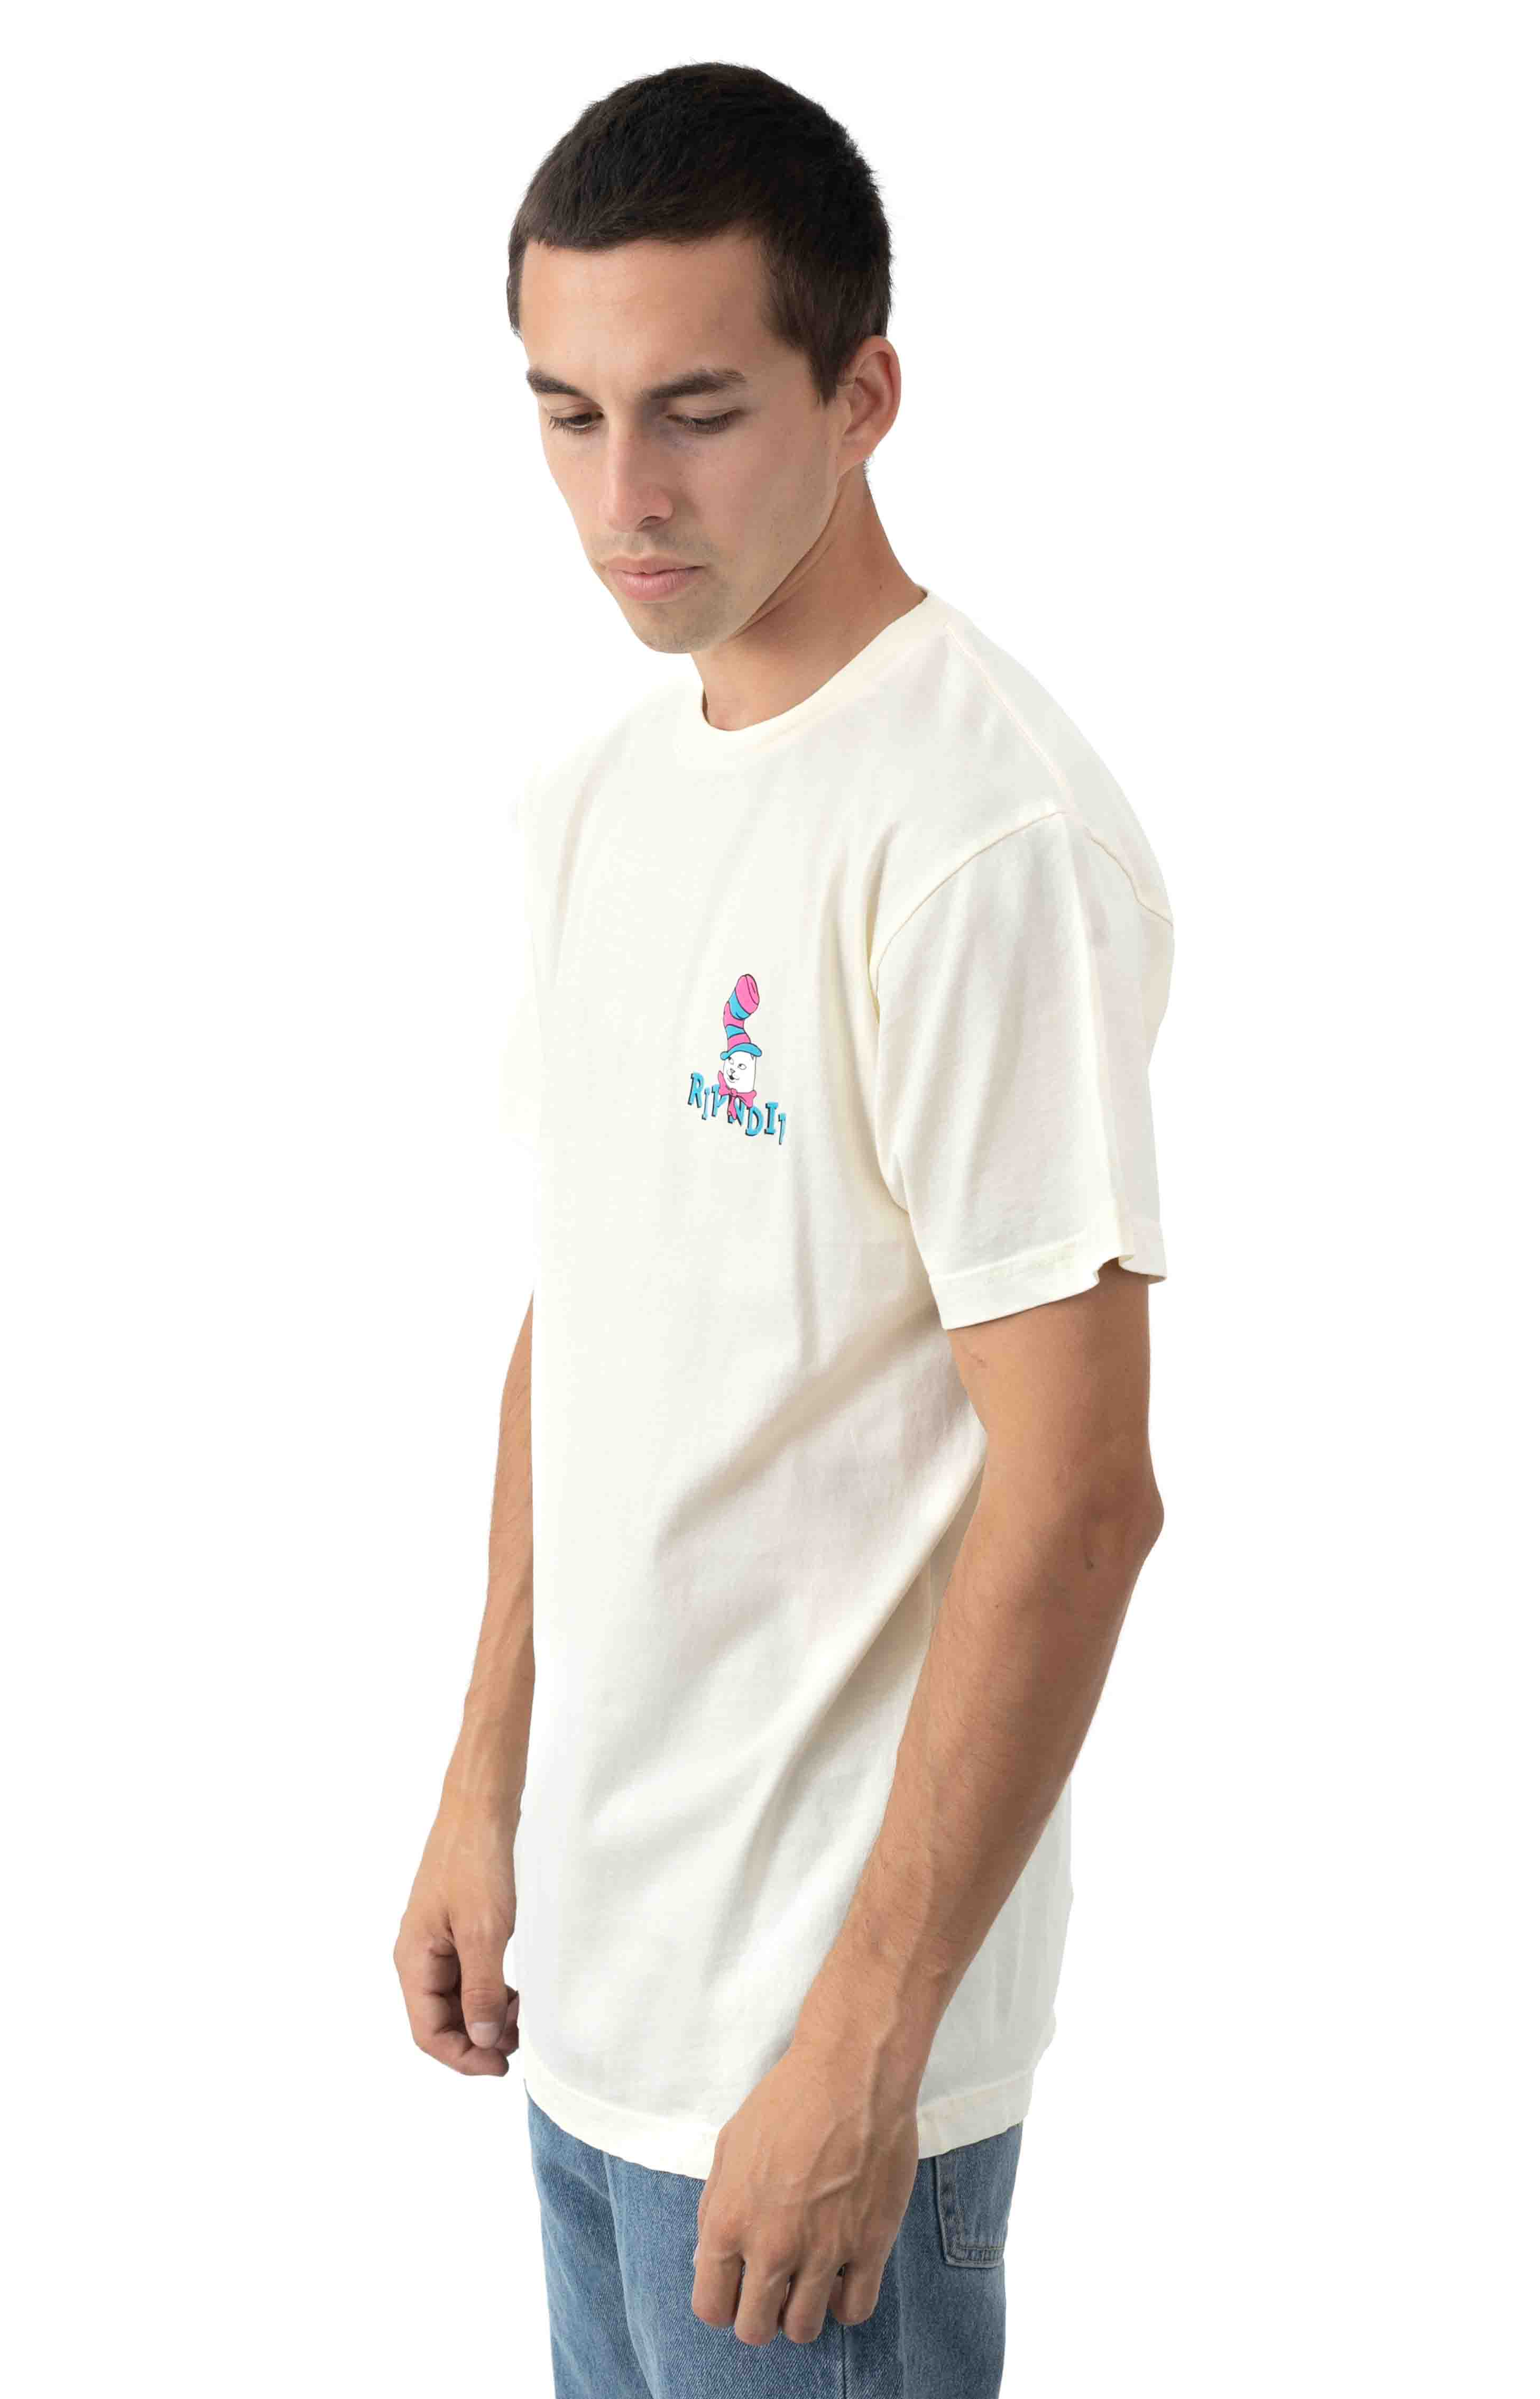 Nerm In a Hat T-Shirt - Natural  3